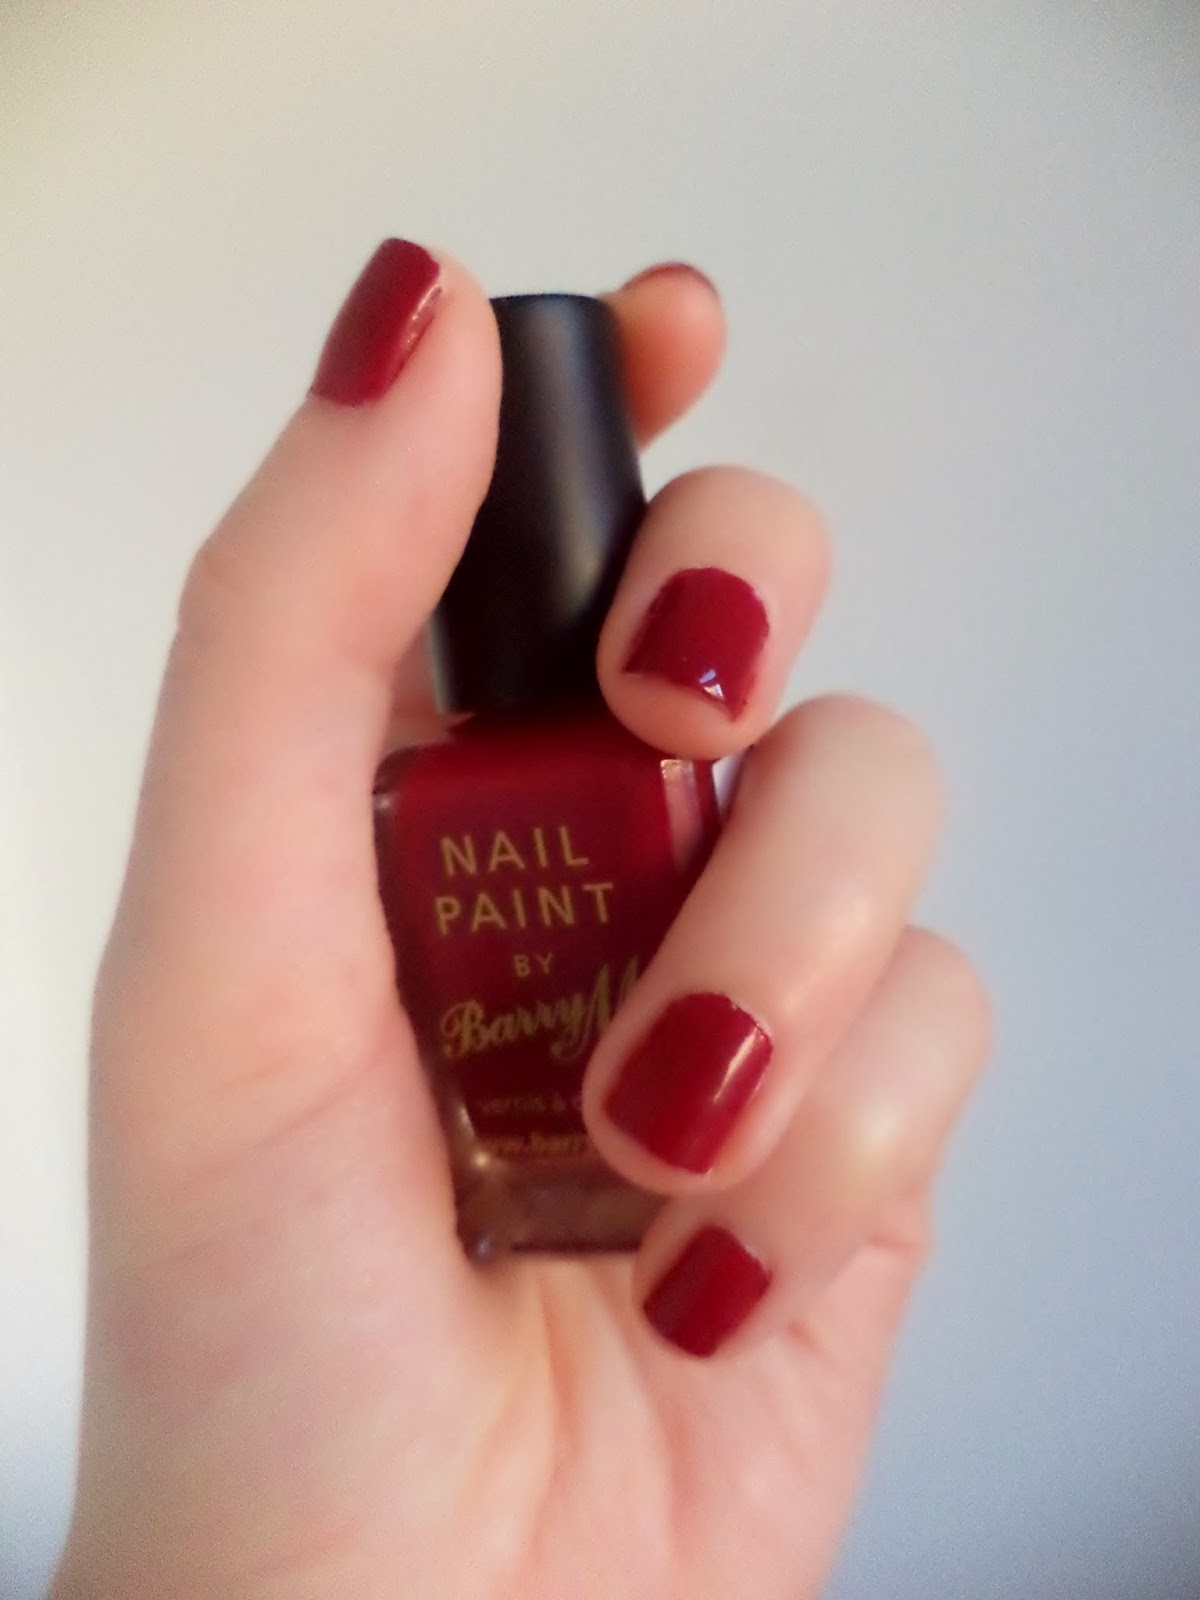 barry m nail paint raspberry